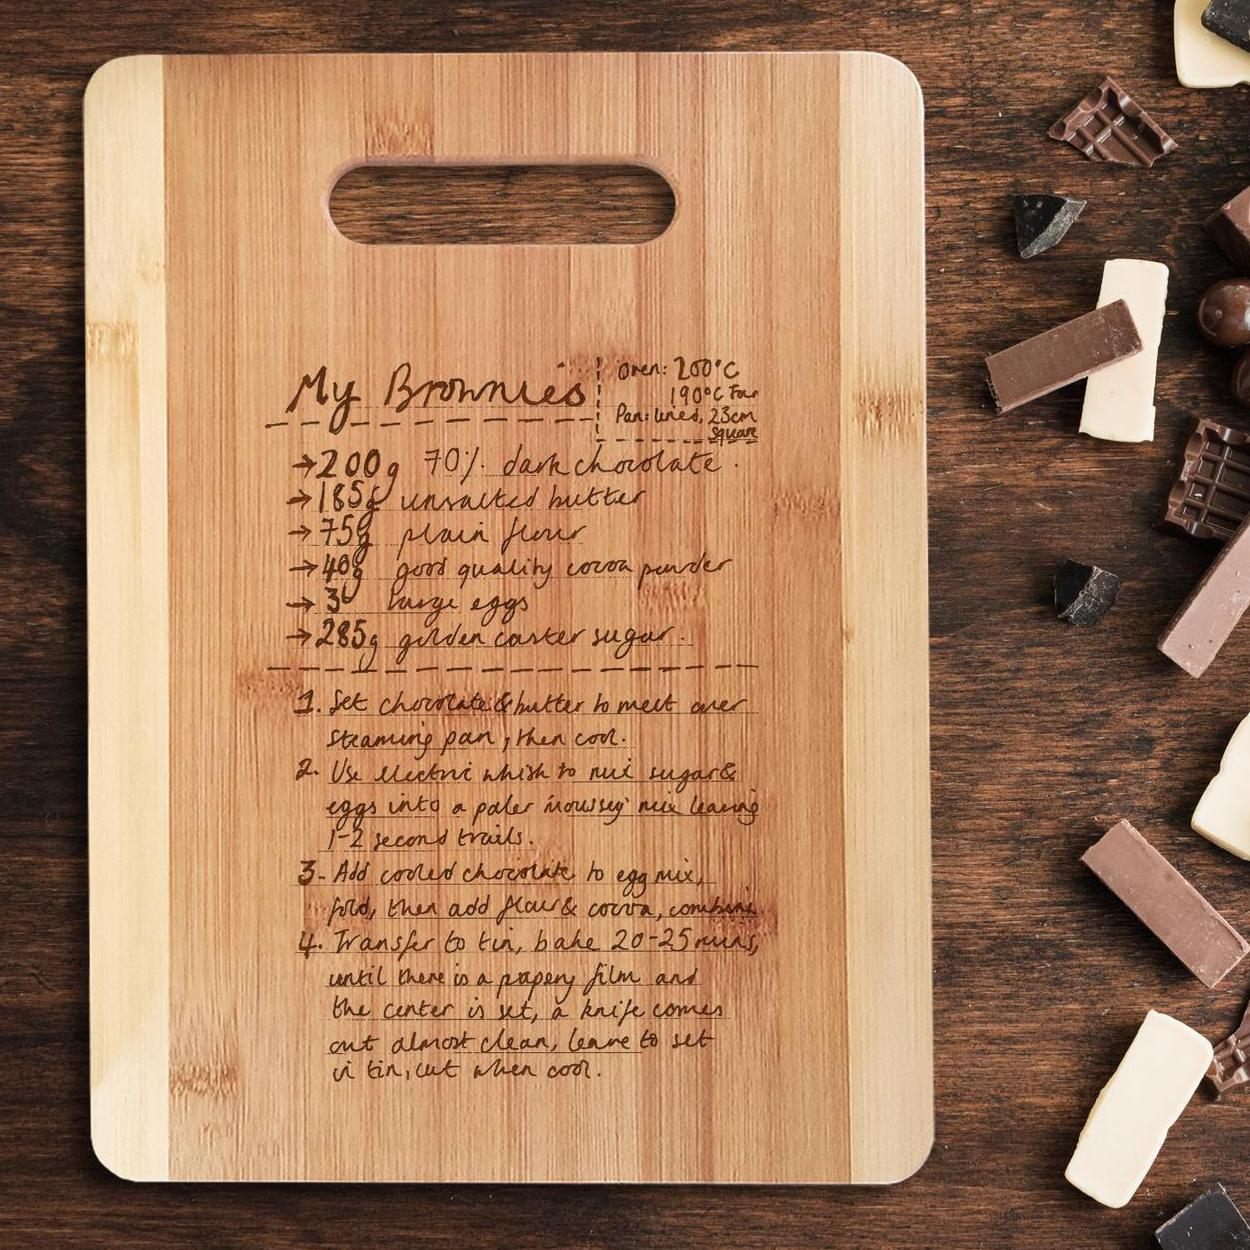 bamboo cutting board engraved with recipe